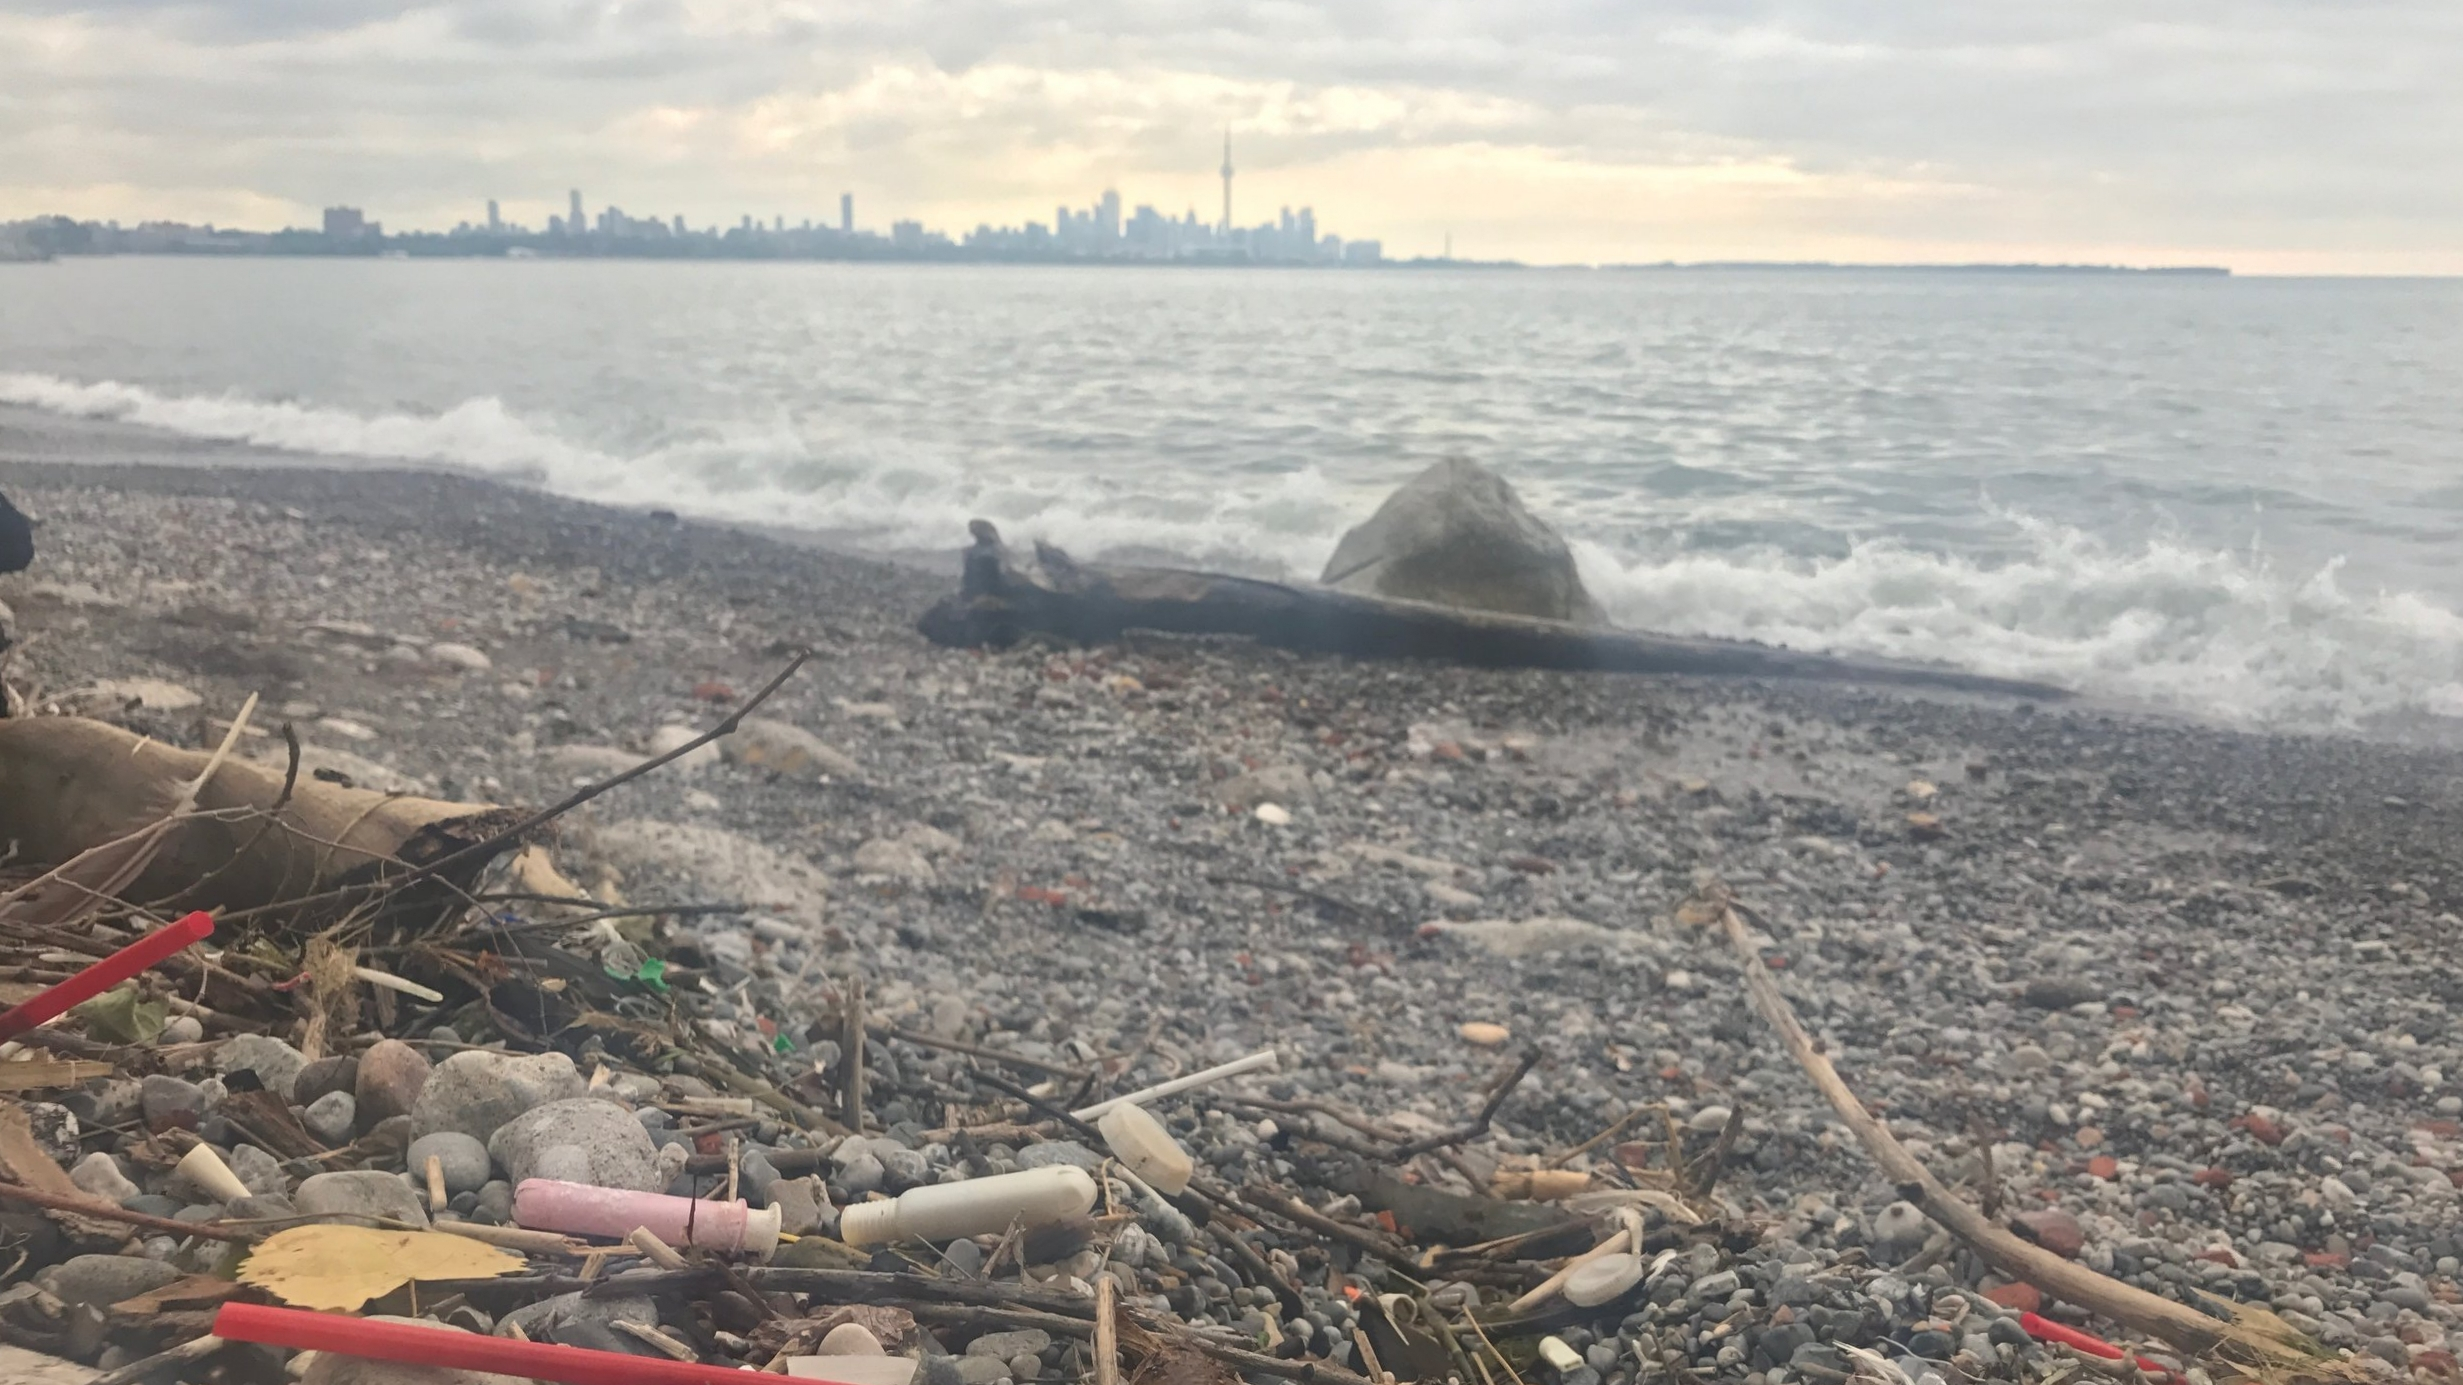 In the distance, the City of Toronto skyline as seen from Humber Bay West Park. In the foreground, tampon applicators dot the beach.